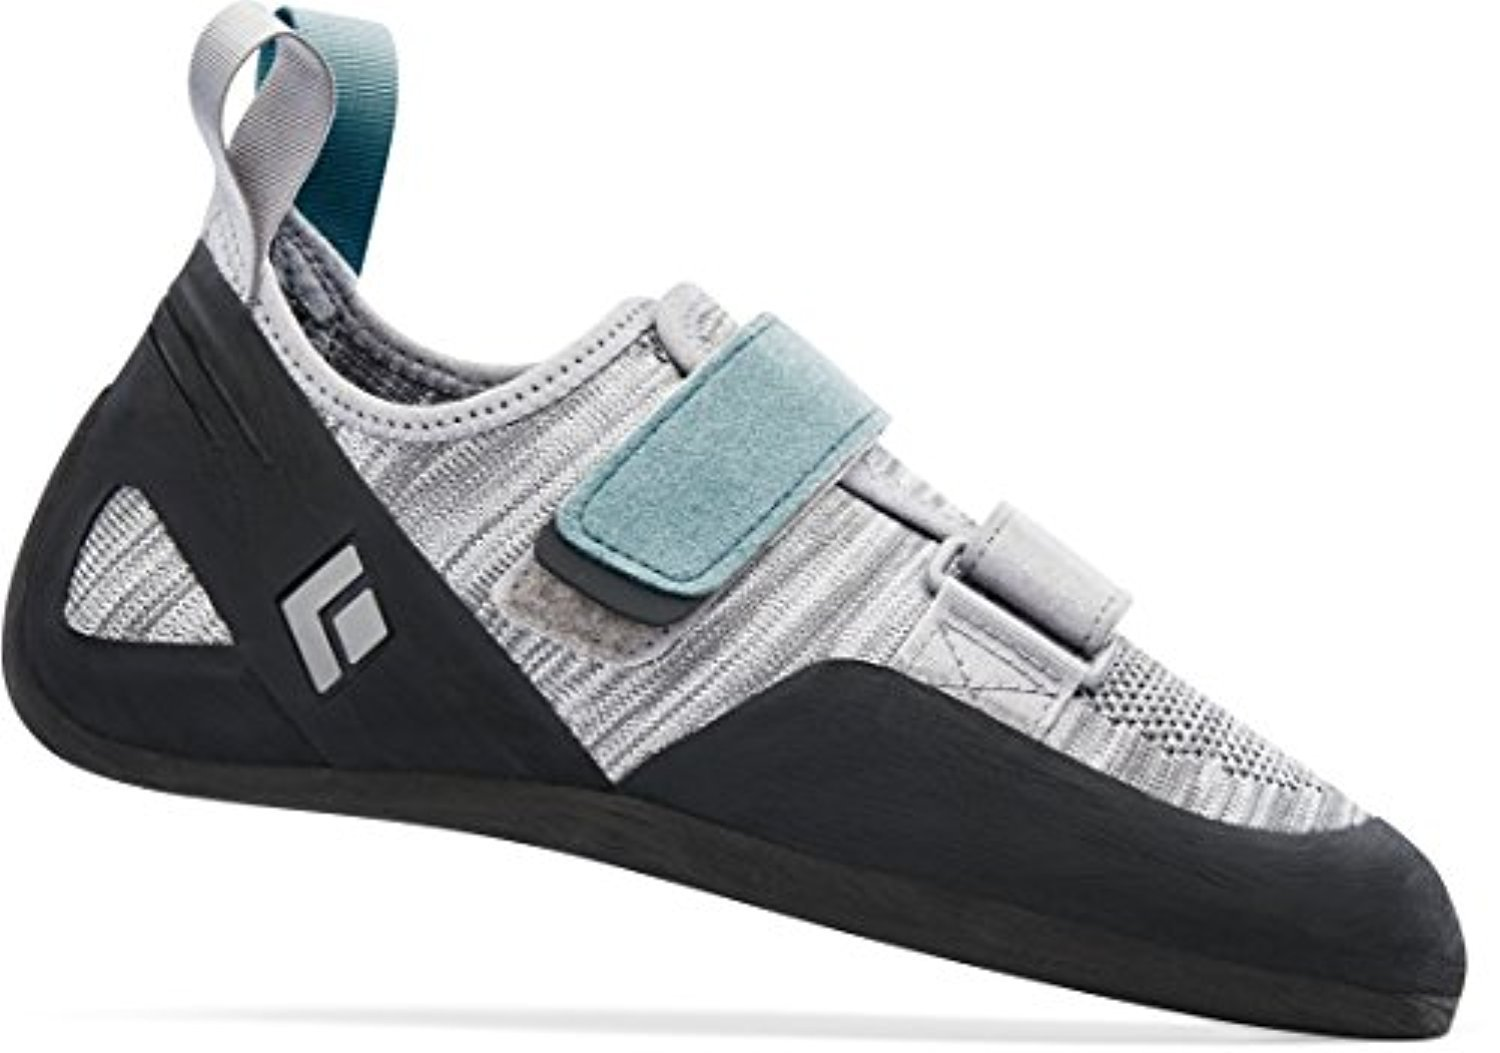 Black Diamond Momentum- Women's Climbing Shoes & Cooling Towel Bundle Black Diamond Gear USA